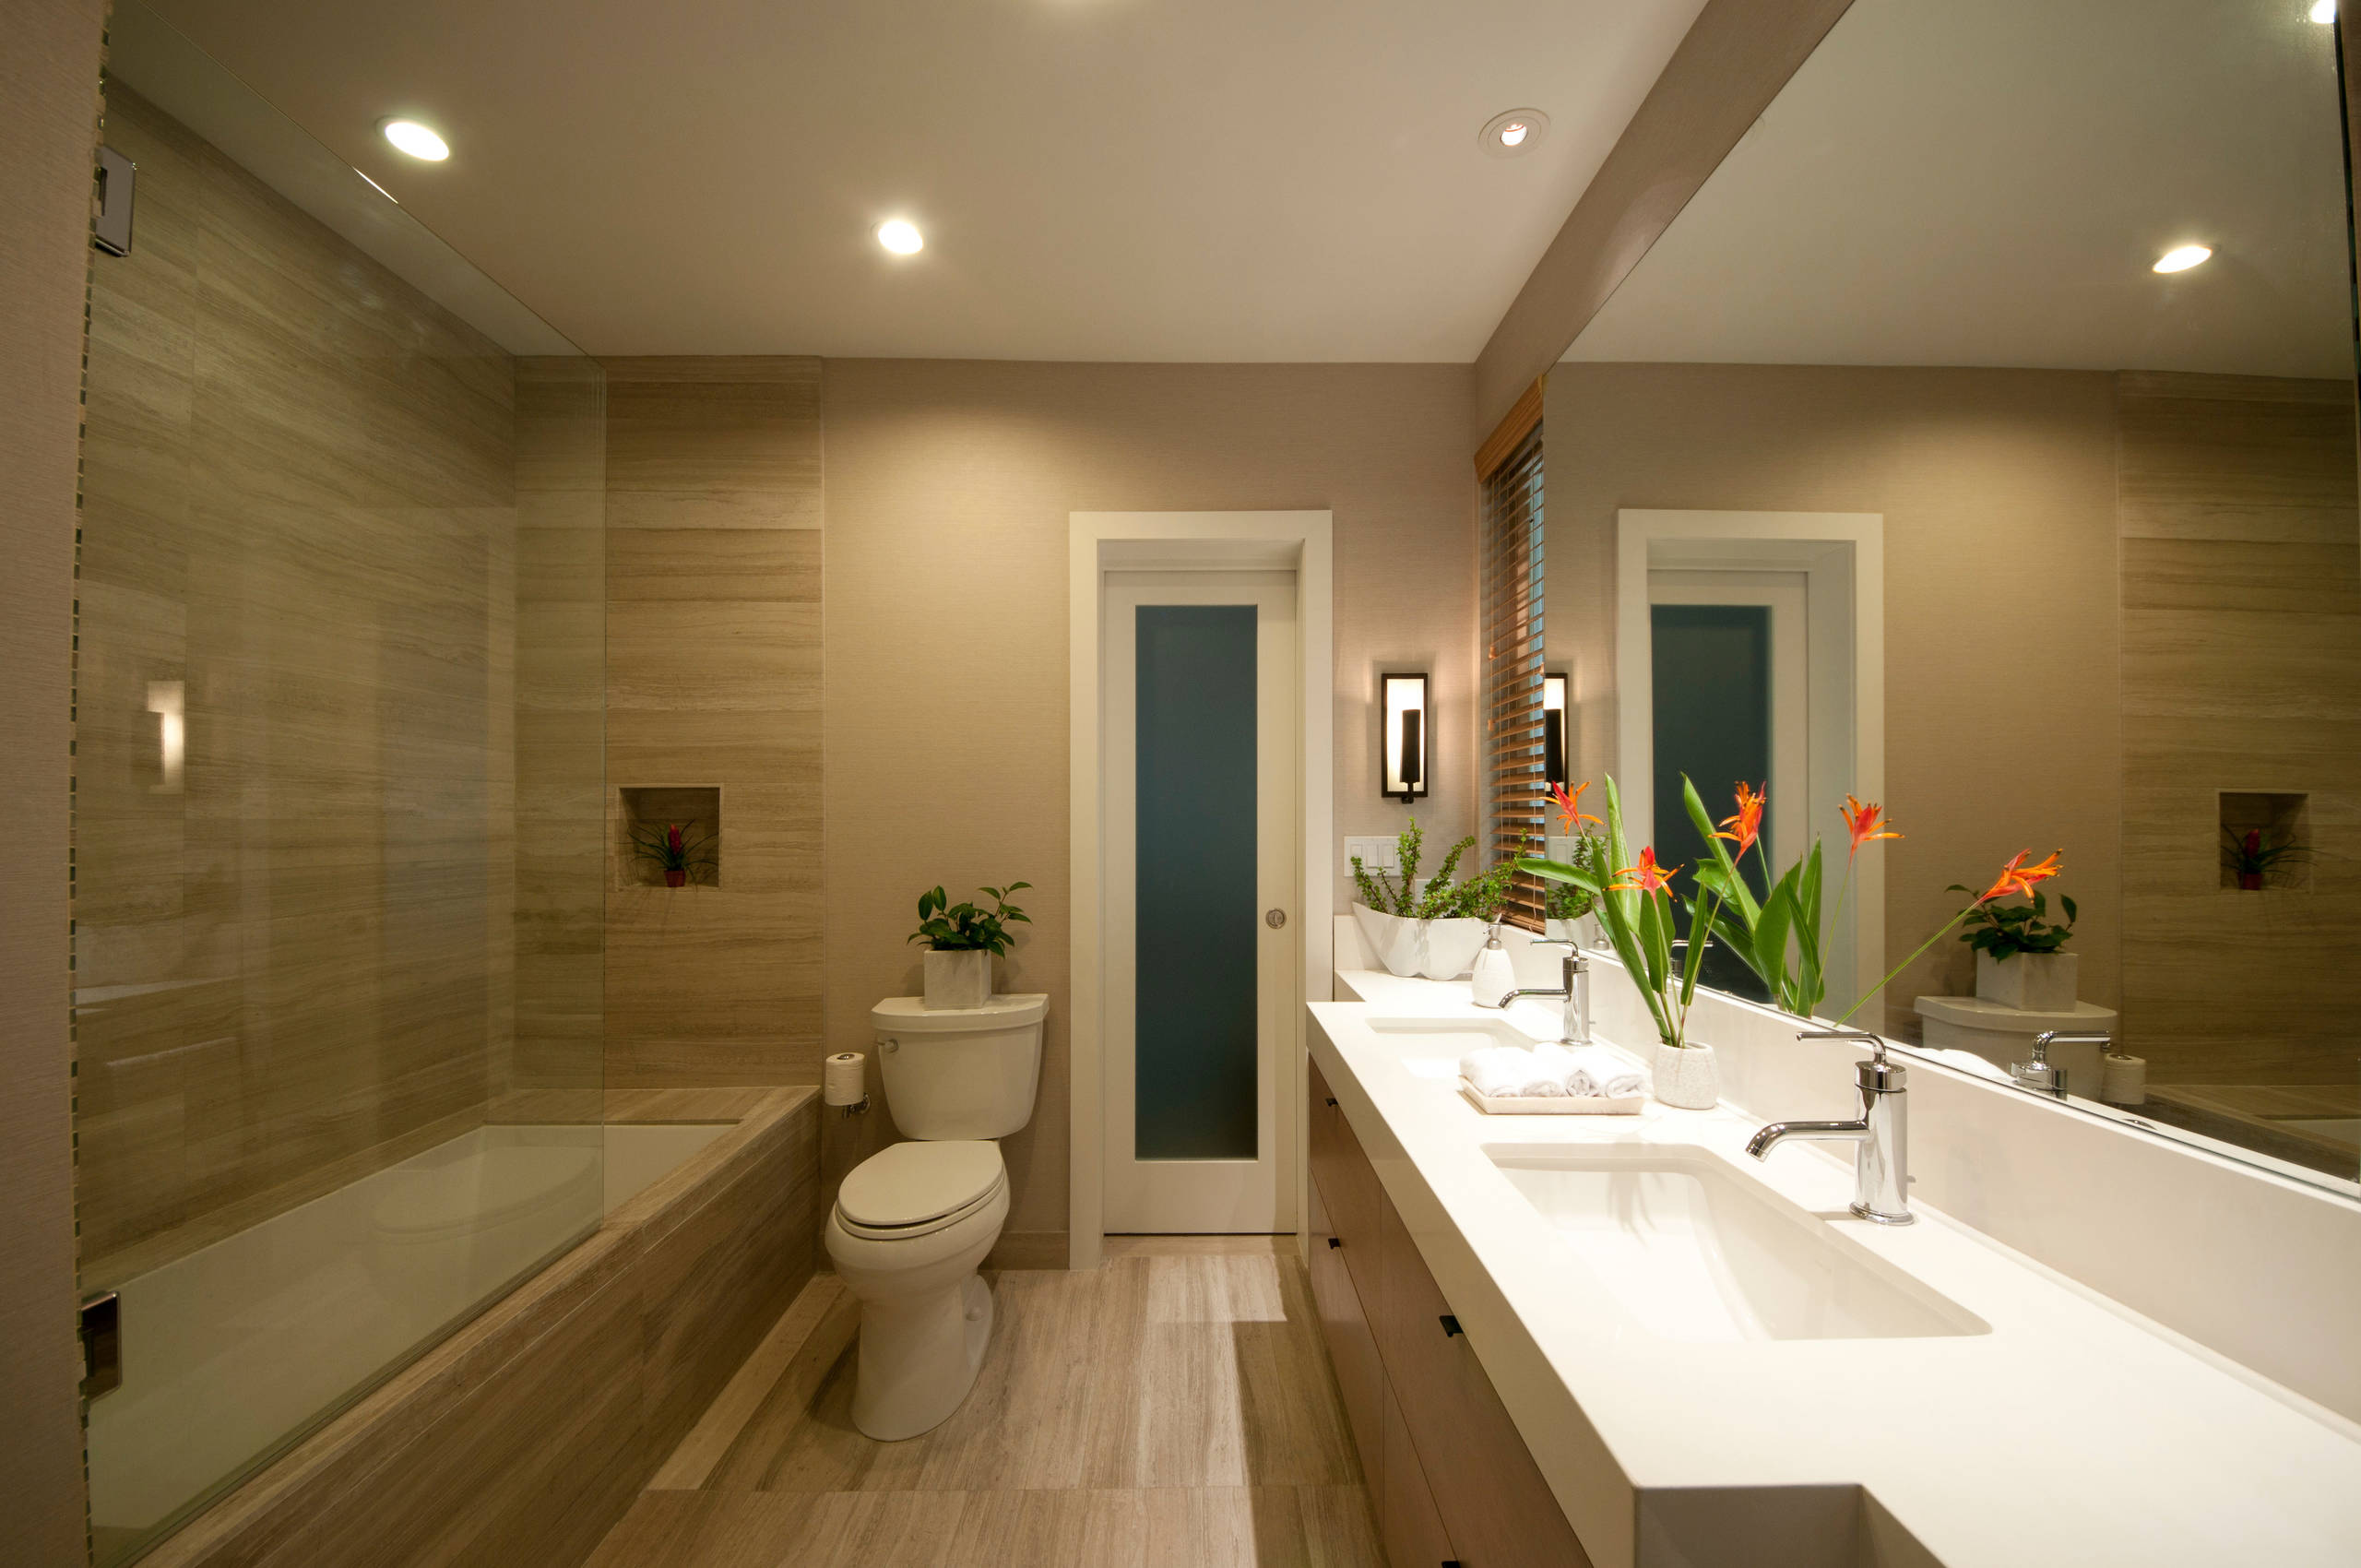 75 Beautiful Bathroom With An Undermount Tub And Brown Walls Pictures Ideas October 2020 Houzz